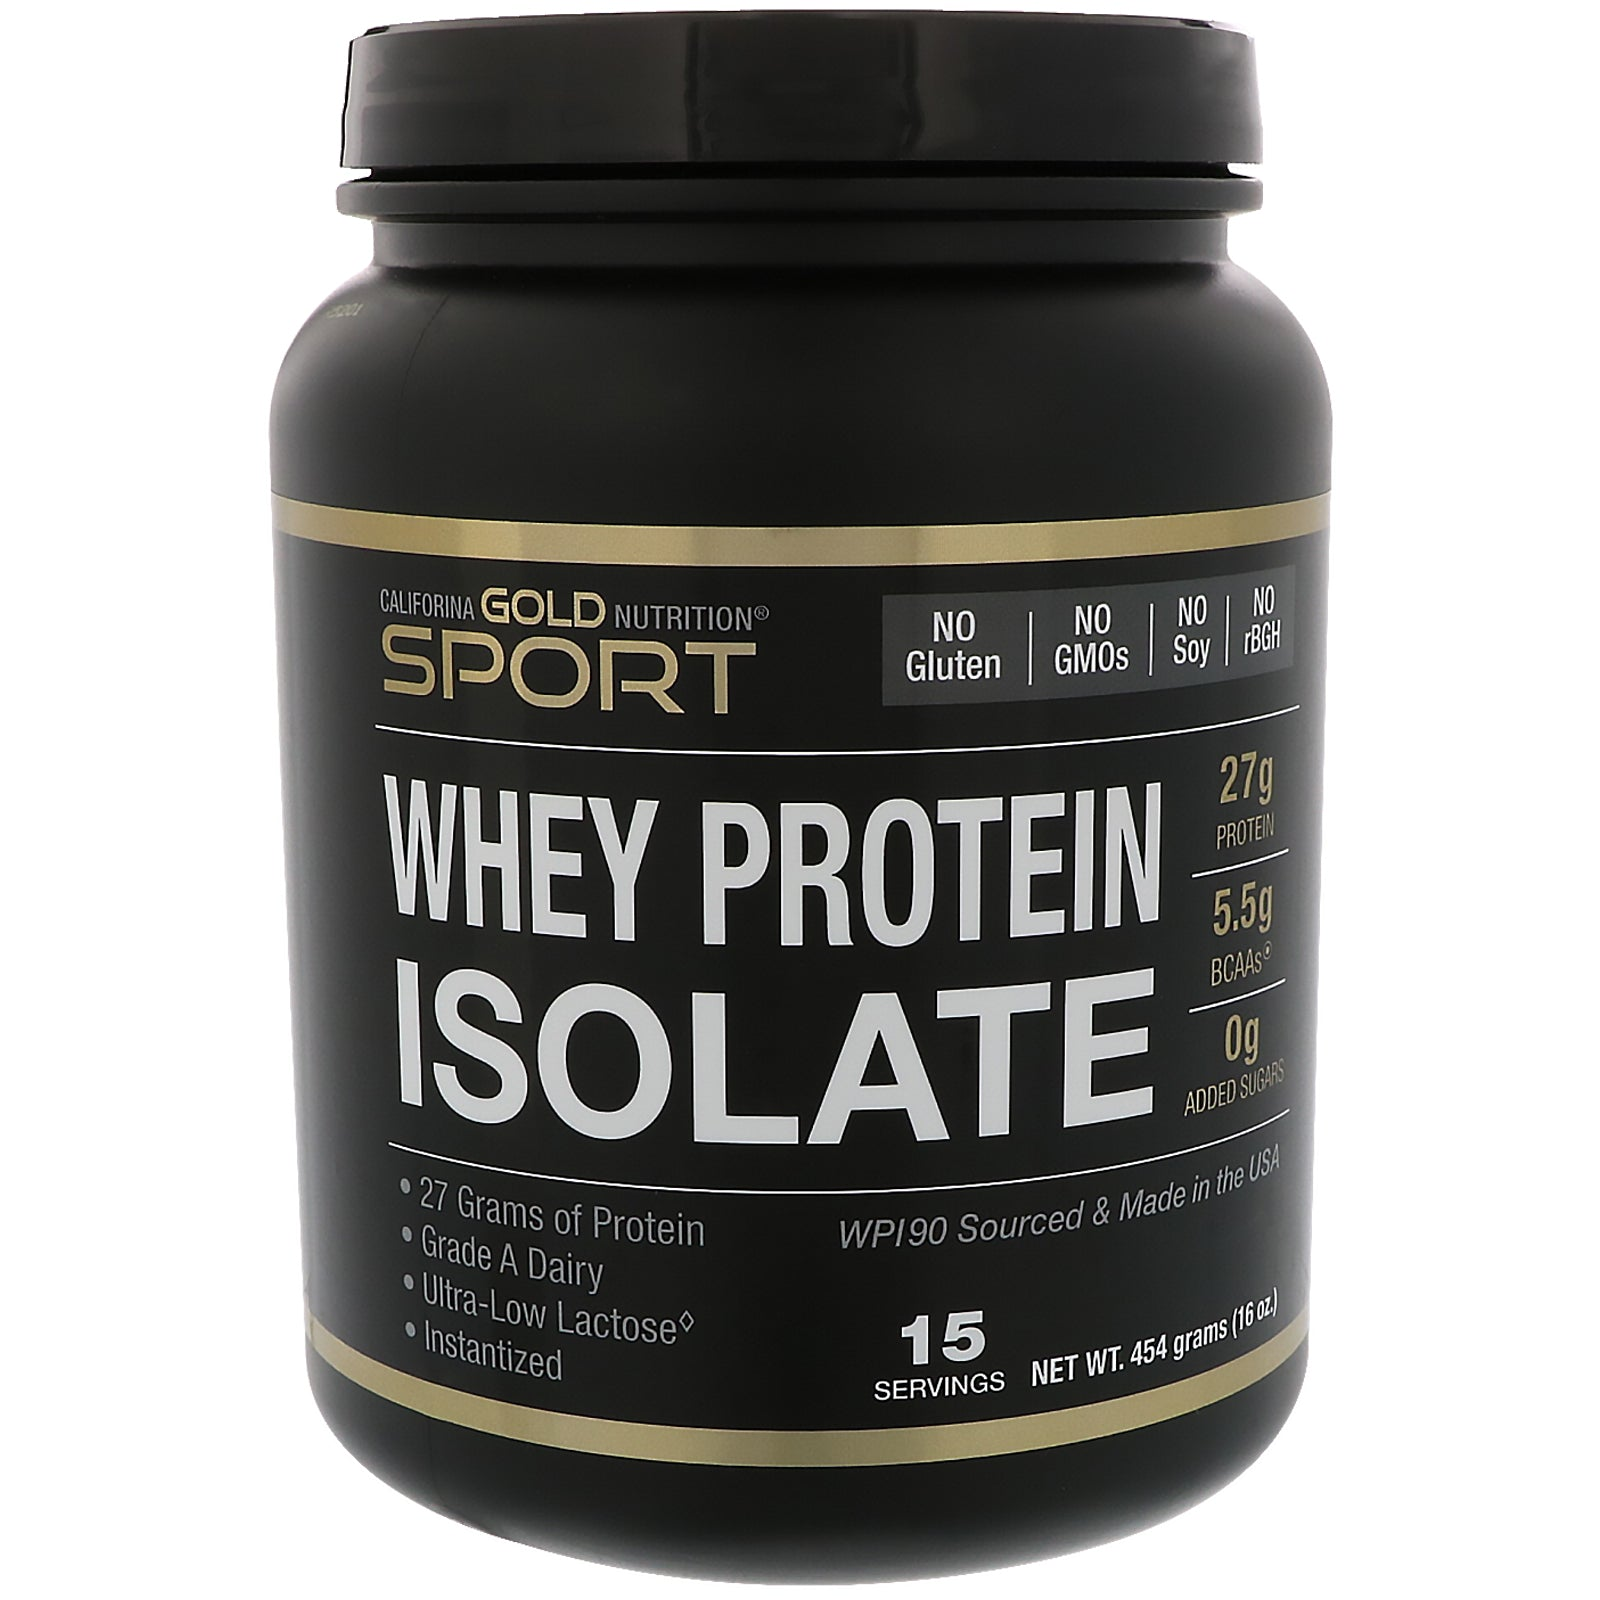 California Gold Nutrition Whey Protein Isolate